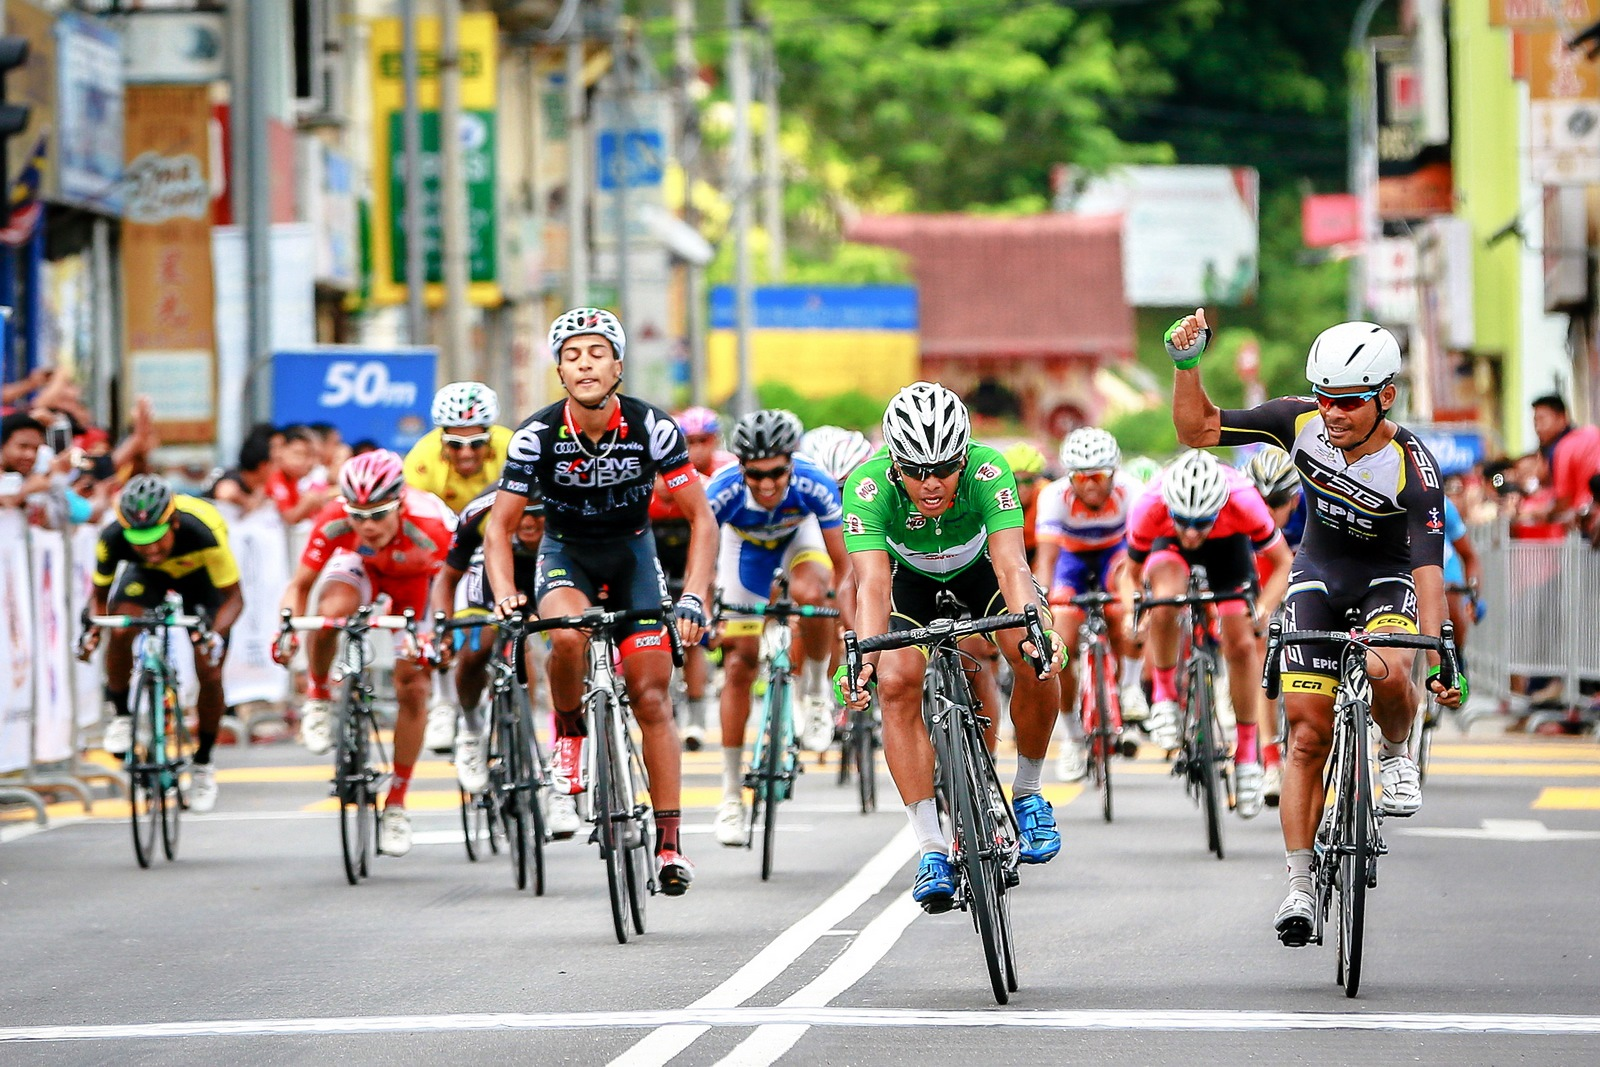 SkyDive Dubai Pro Cycling Team were the big winners in the 50th anniversary Jelajah Malaysia with their Tunisian rider c taking the yellow jersey with a total time of 18:45:54 although he finished 10th in the fifth and final stage in Kuala Klawang, Jelebu.